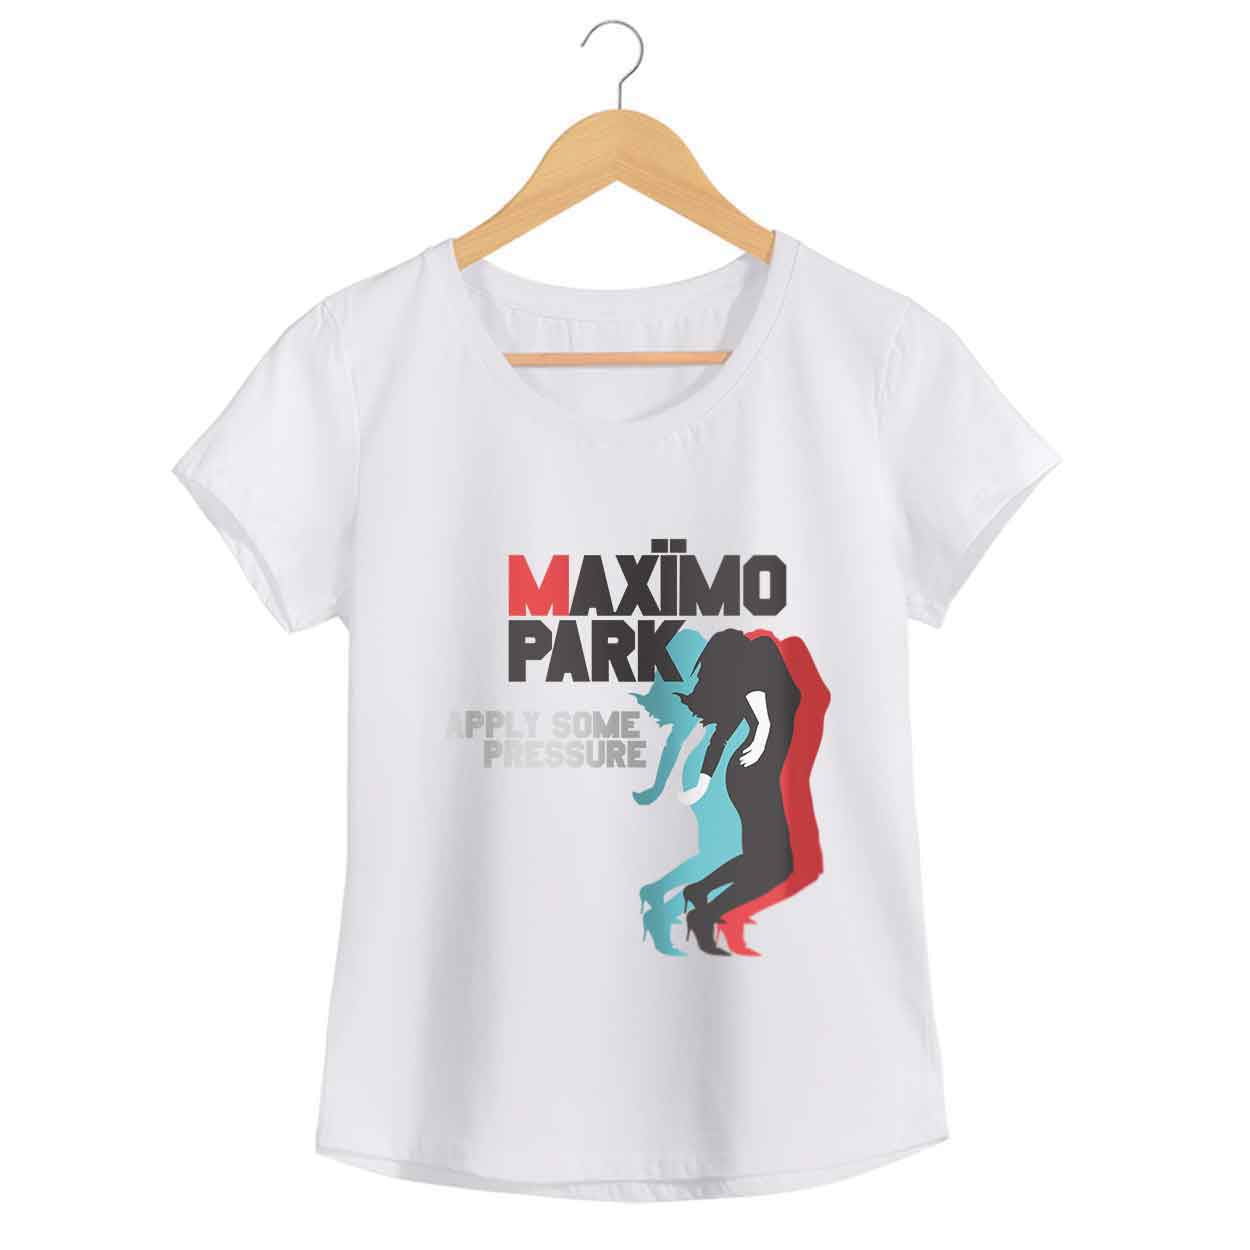 Camiseta - Apply Some Pressure - Maximo Park - Feminino